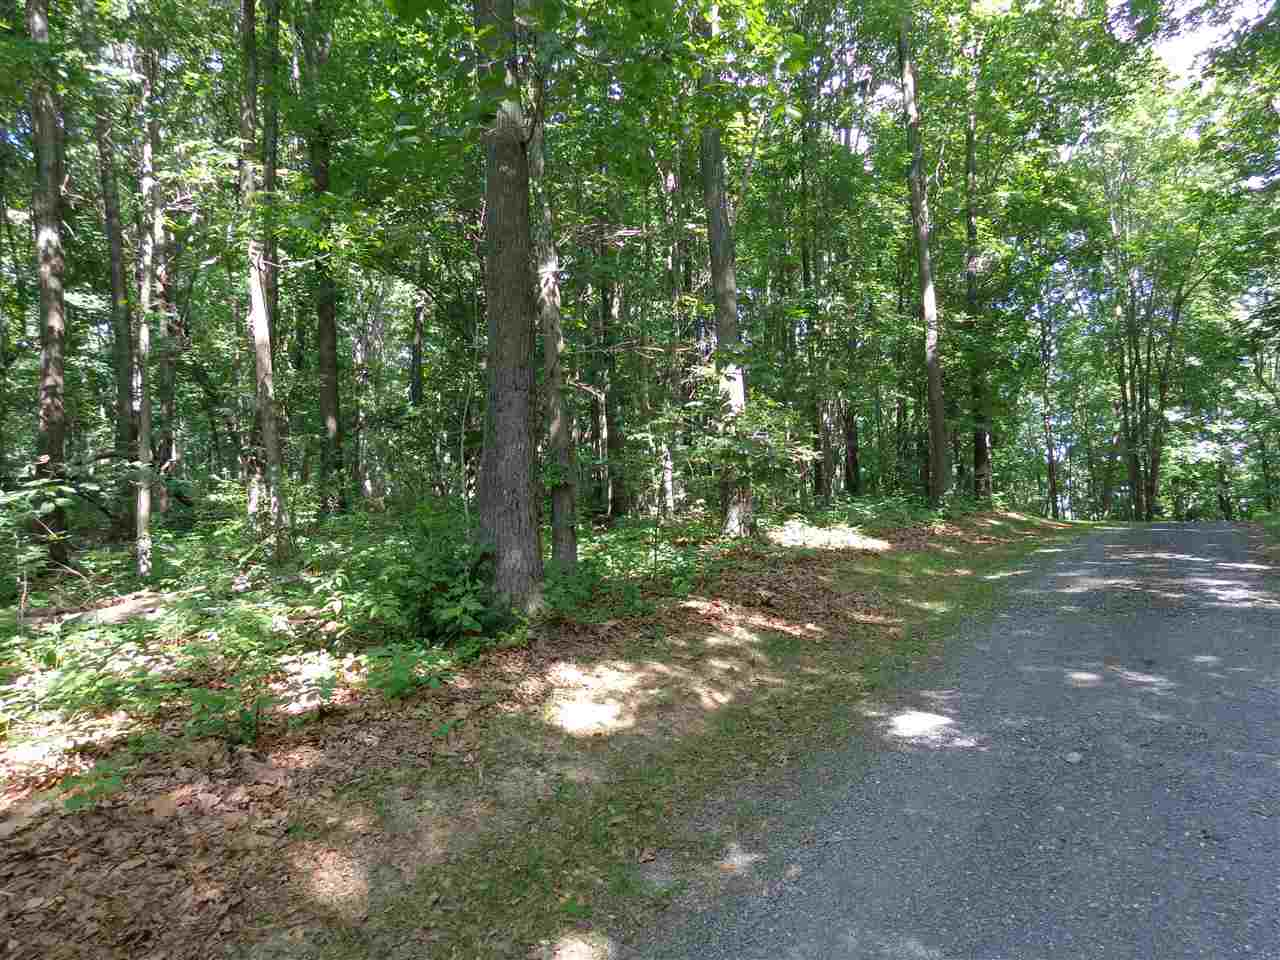 Image of Acreage for Sale near Mount Solon, Virginia, in Augusta county: 2.00 acres